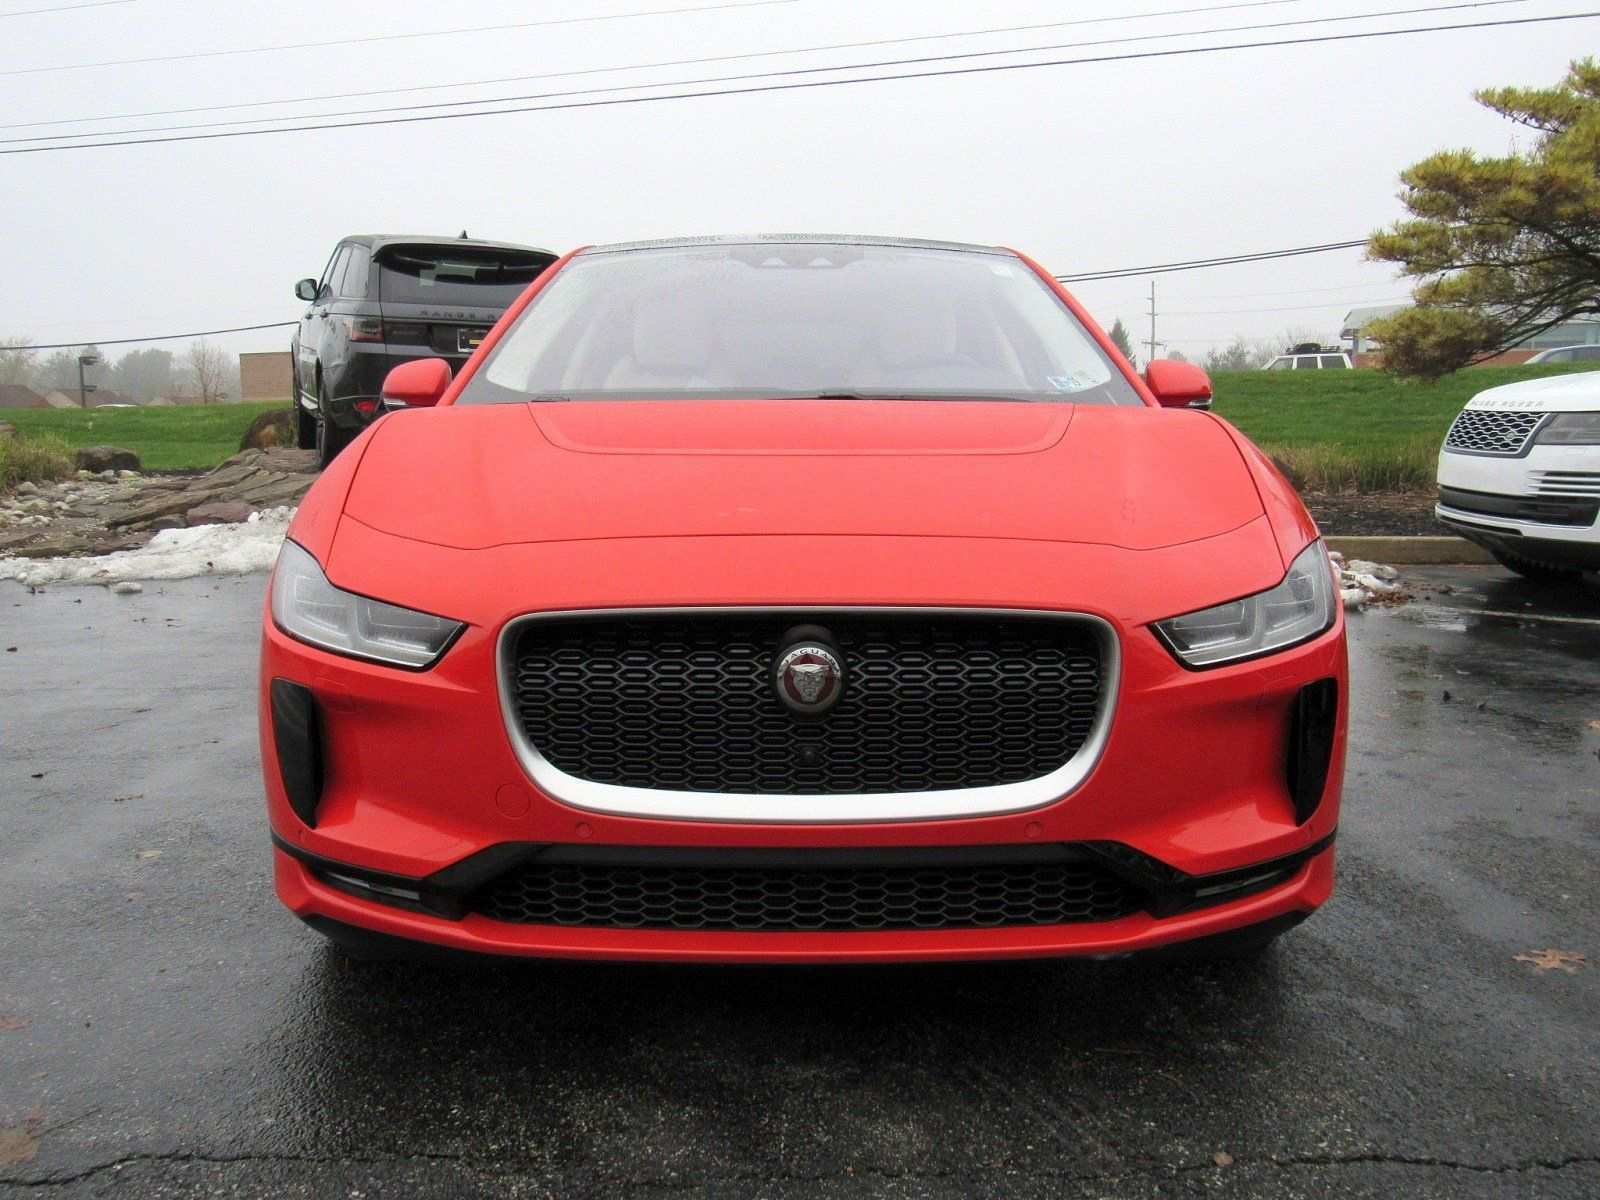 48 Best Review The 2019 Jaguar Vehicles Concept Redesign And Review Spesification with The 2019 Jaguar Vehicles Concept Redesign And Review